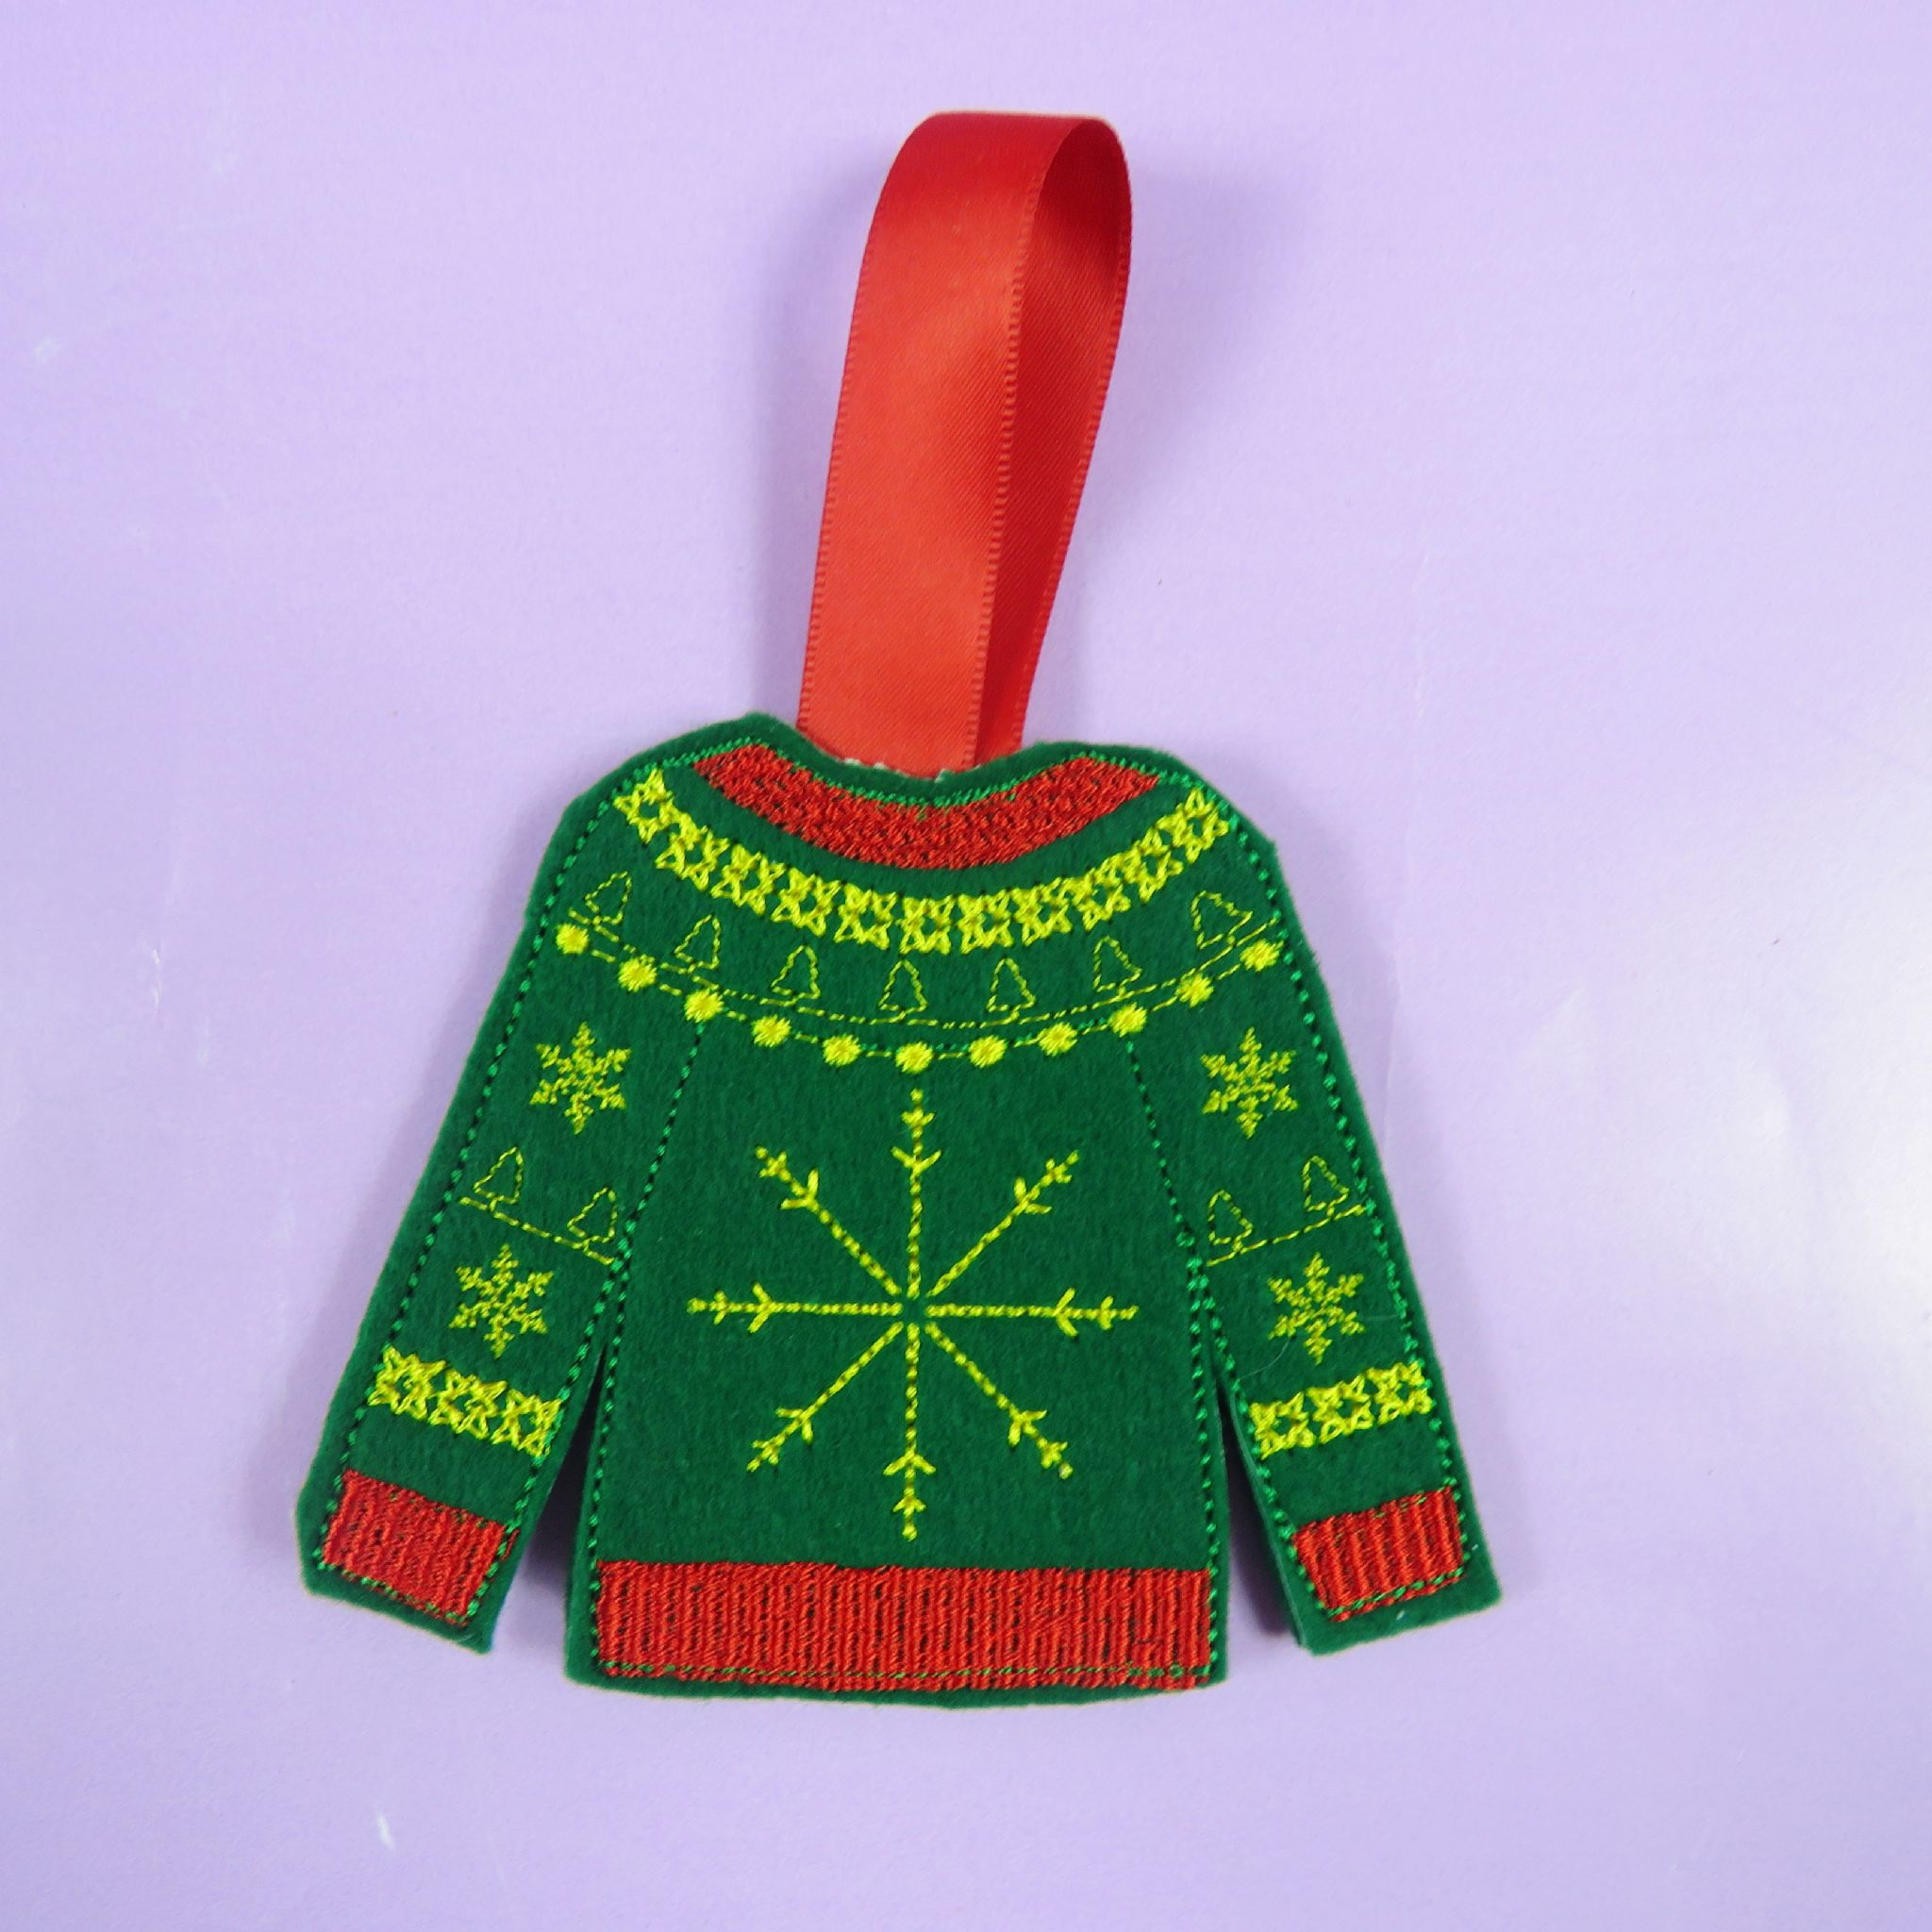 felt jumper christmas decorations santa xmas decs embroidered ugly christmas jumper